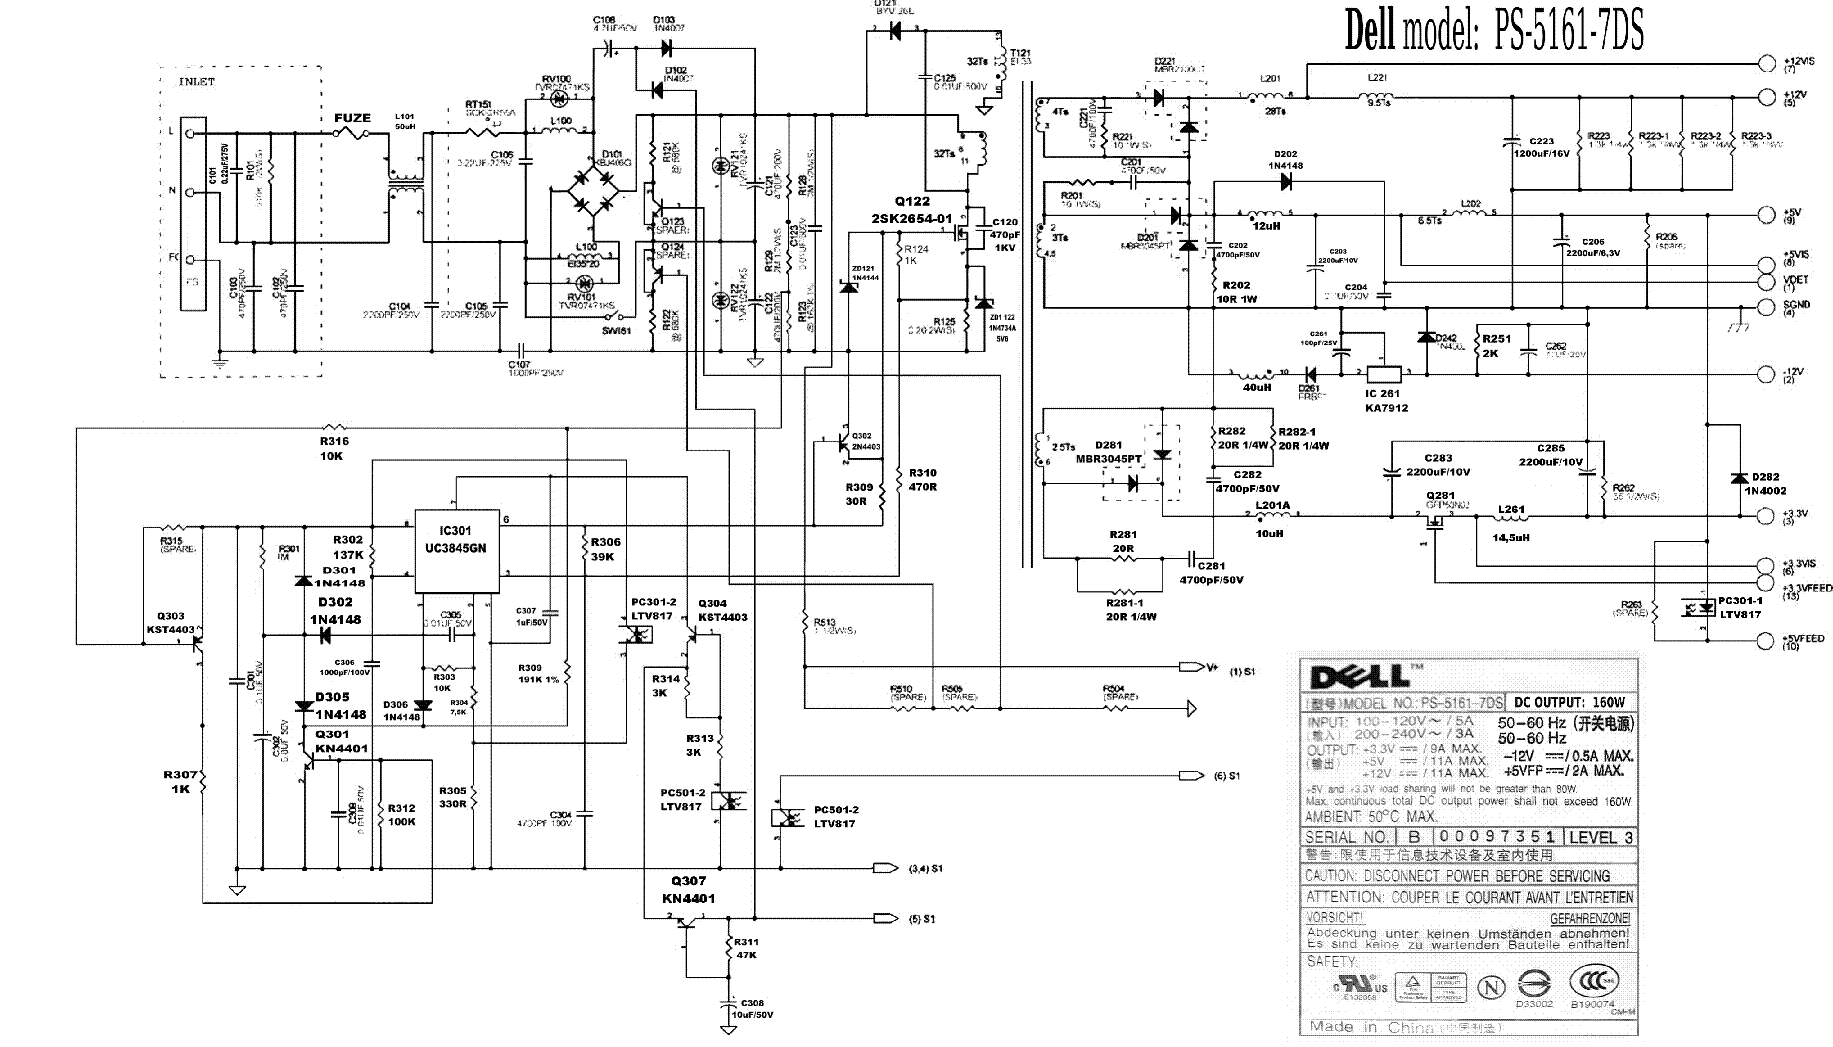 Dell Power Supply Schematics Bookmark About Wiring Diagram Schematic Schema Circuit Pa12 19v Notebook Adapter Smps 1d07012 3 Ps 5161 7ds Service Manual Download Rh Elektrotanya Com Laptop